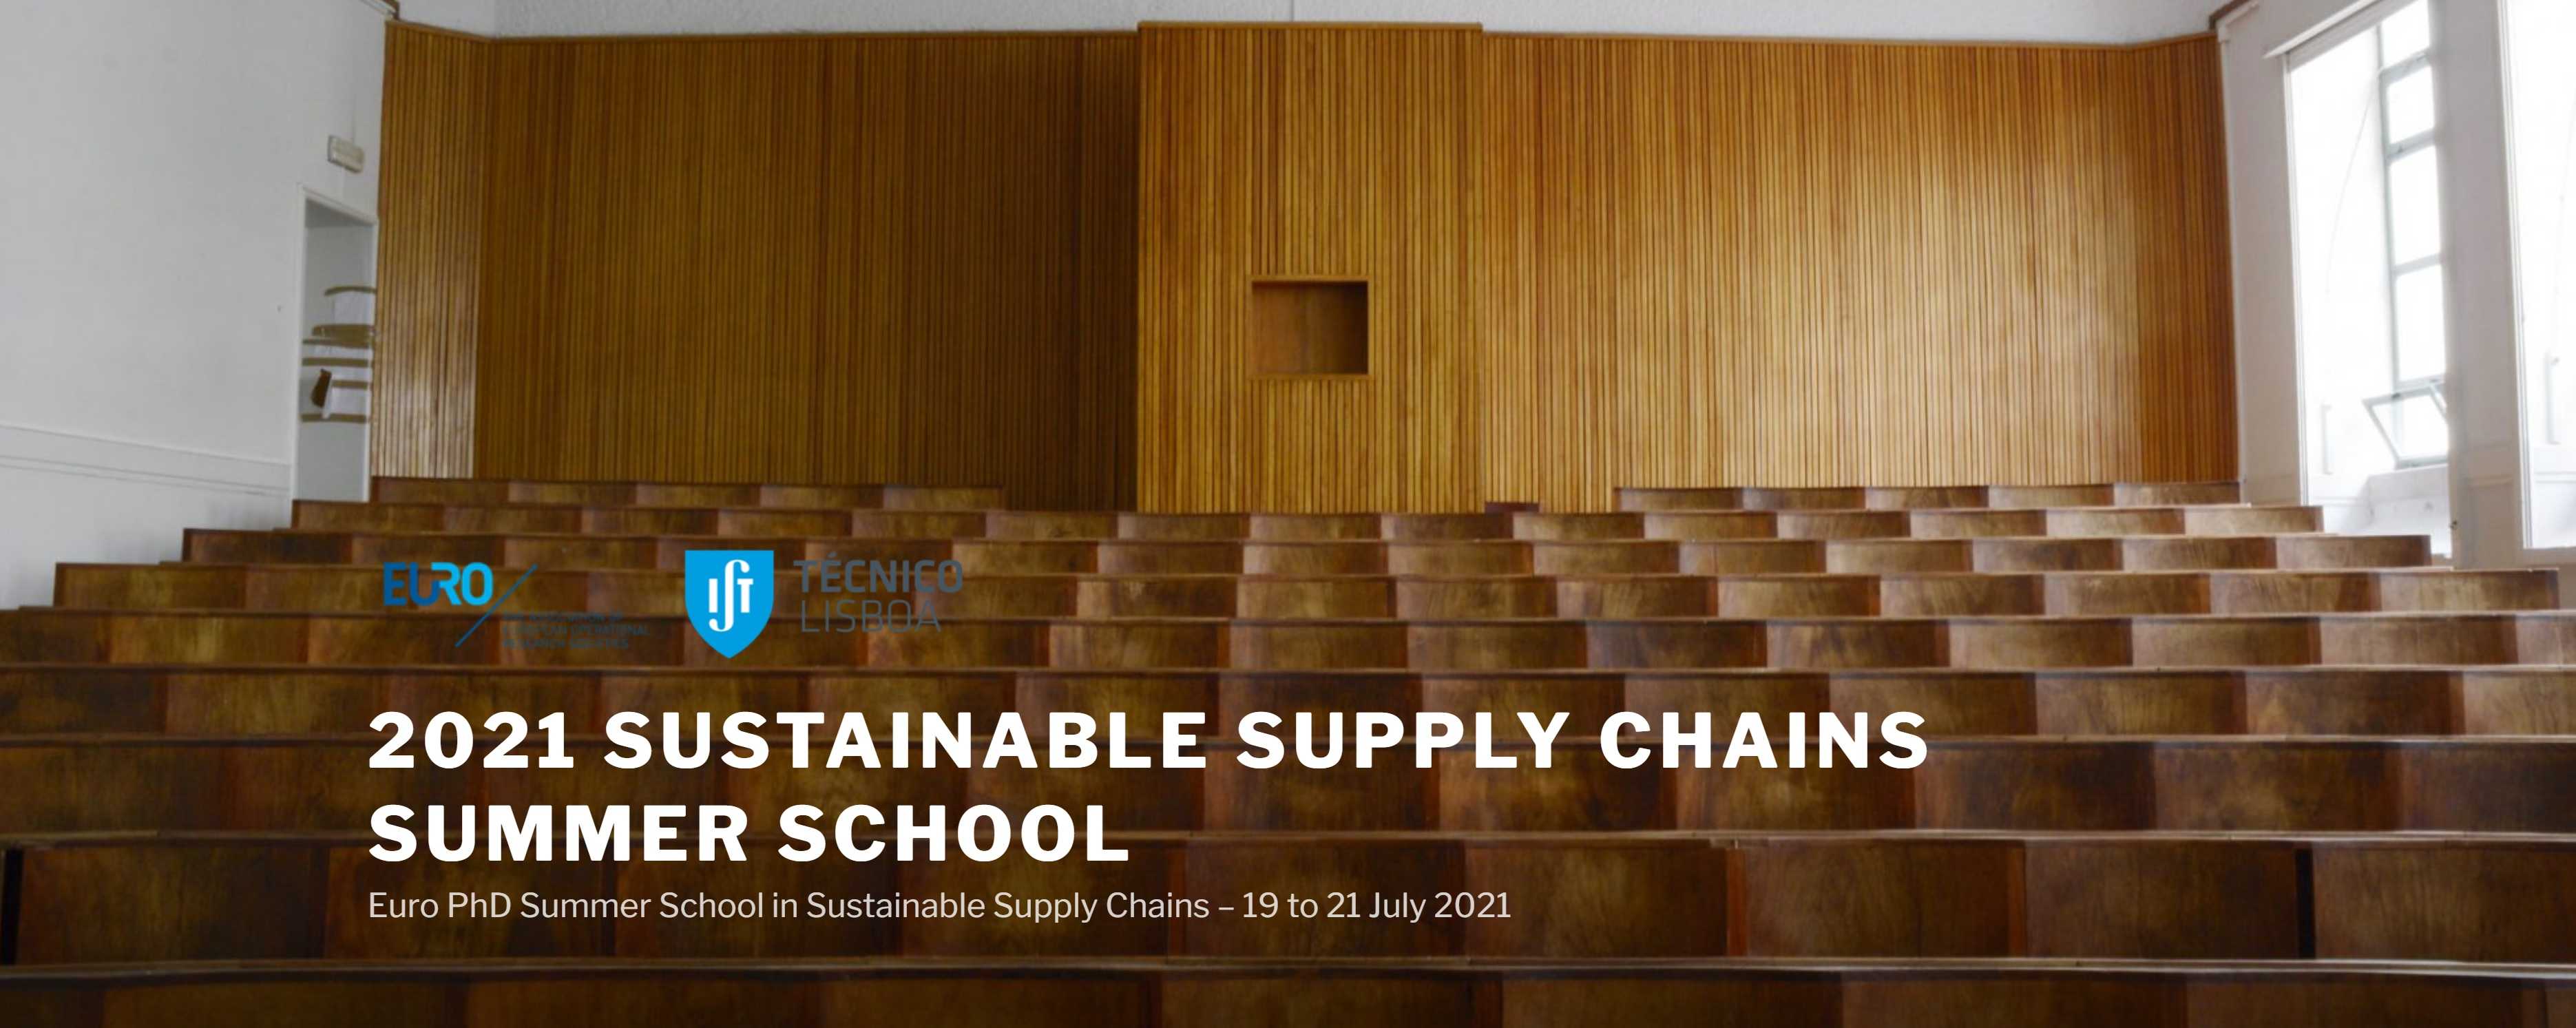 EURO PhD Summer School on Sustainable Supply Chains, July 18-22, 2021, Lisbon, Portugal